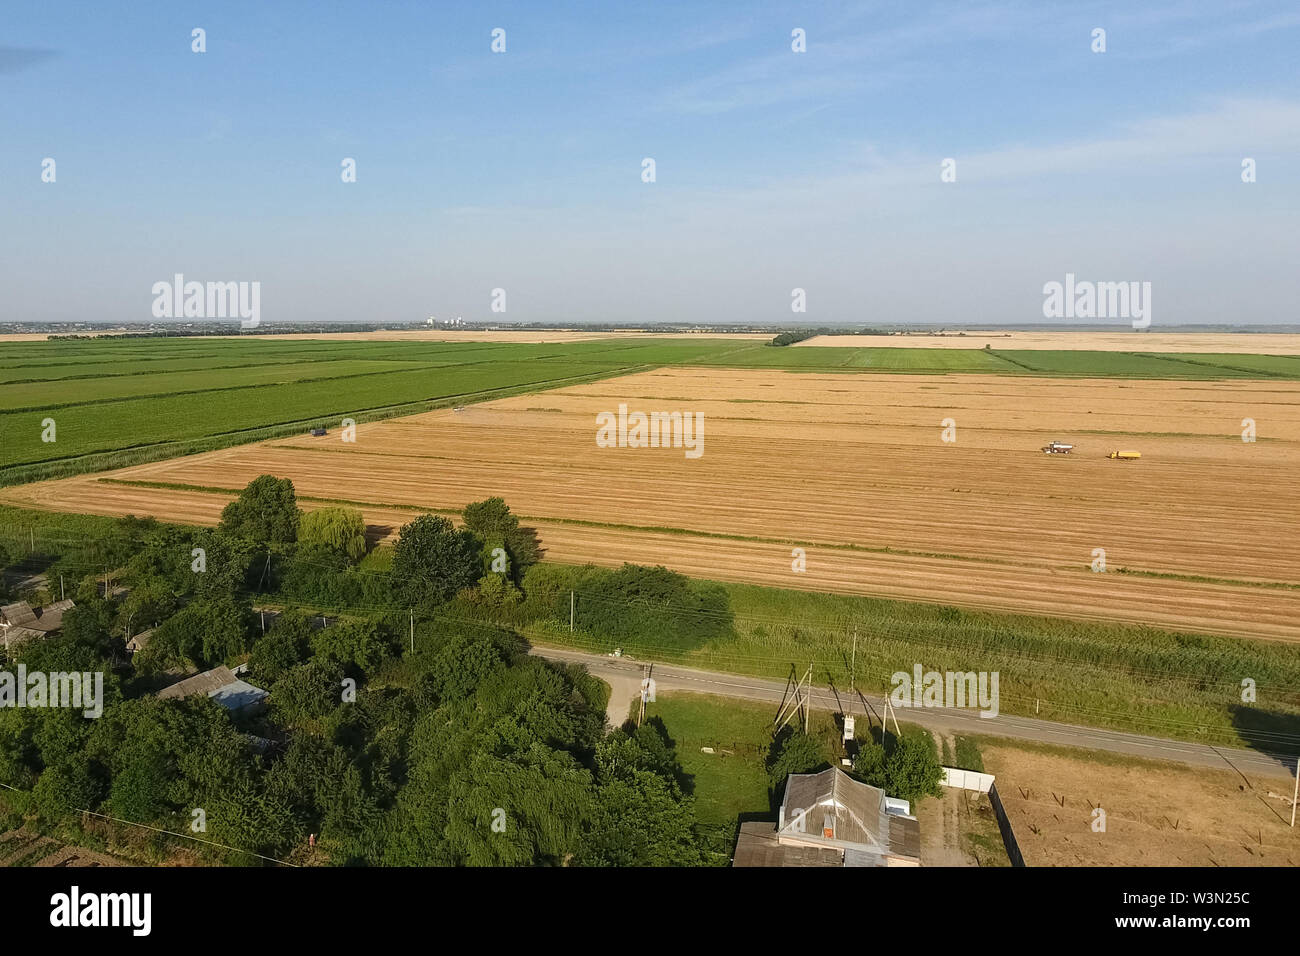 View of the field through the village. Rural landscape. Stock Photo